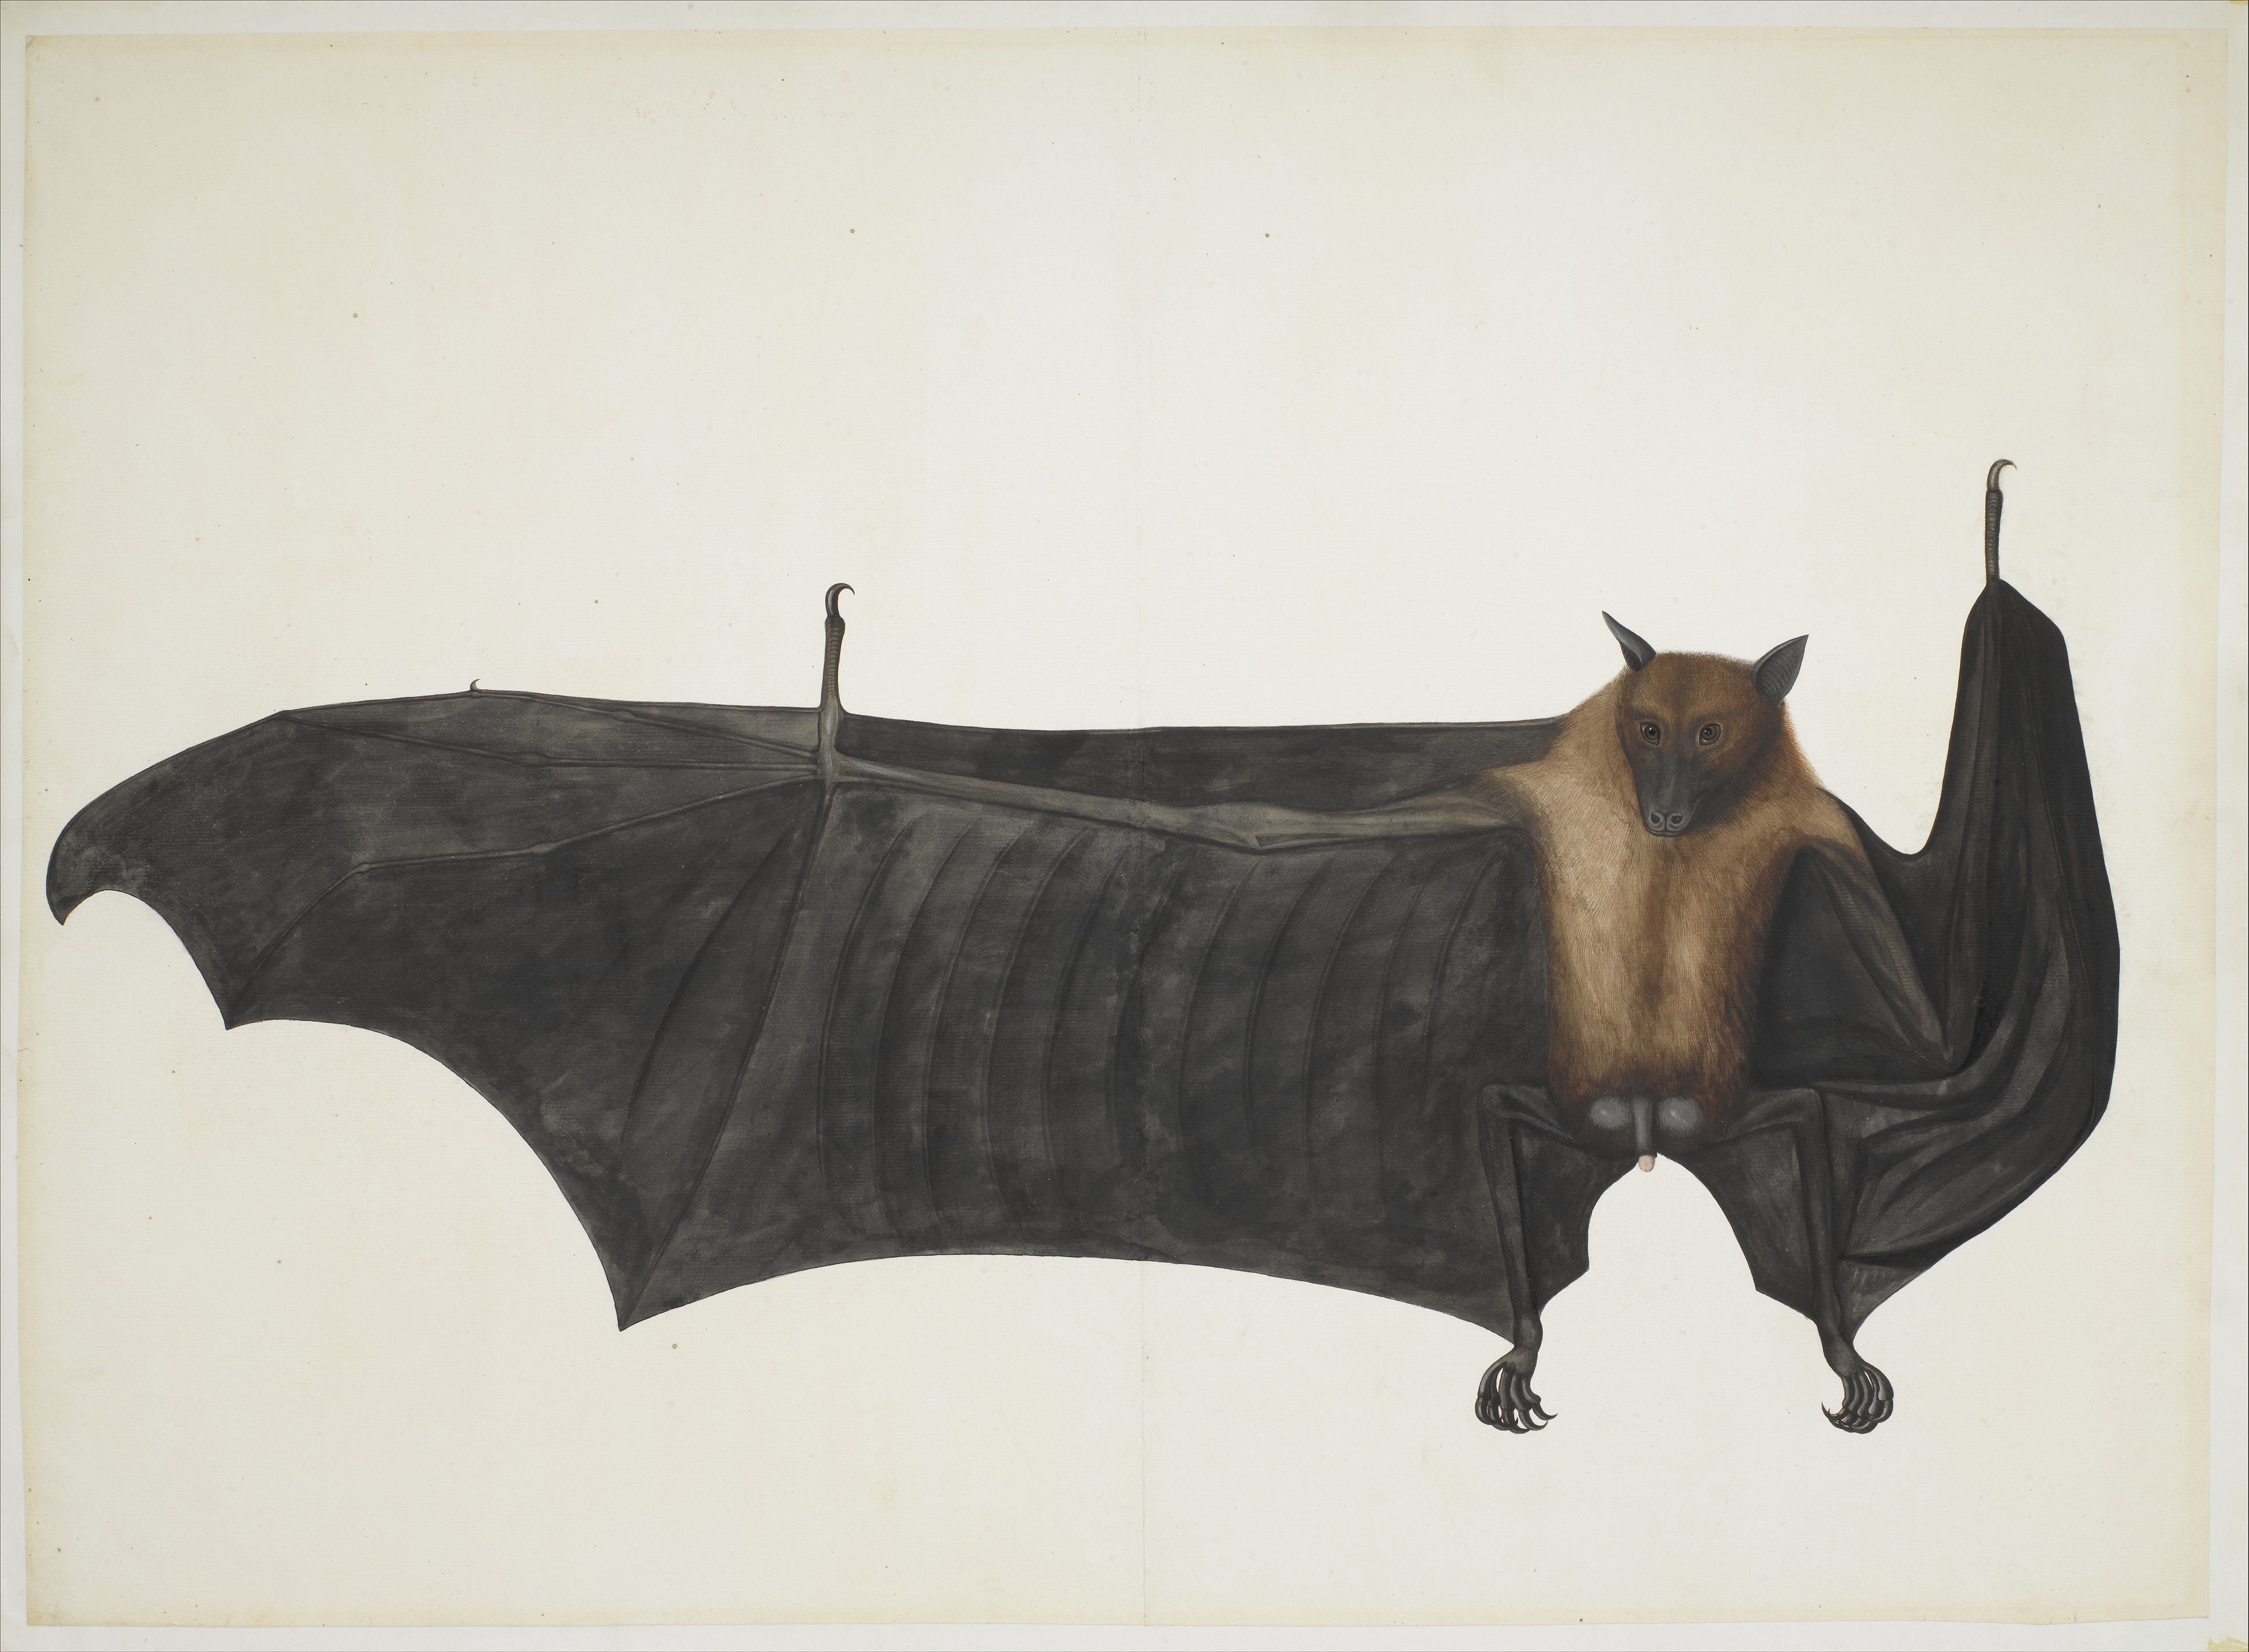 Watercolour painting of a bat, facing the viewer with its right wing extended, against a plain white background